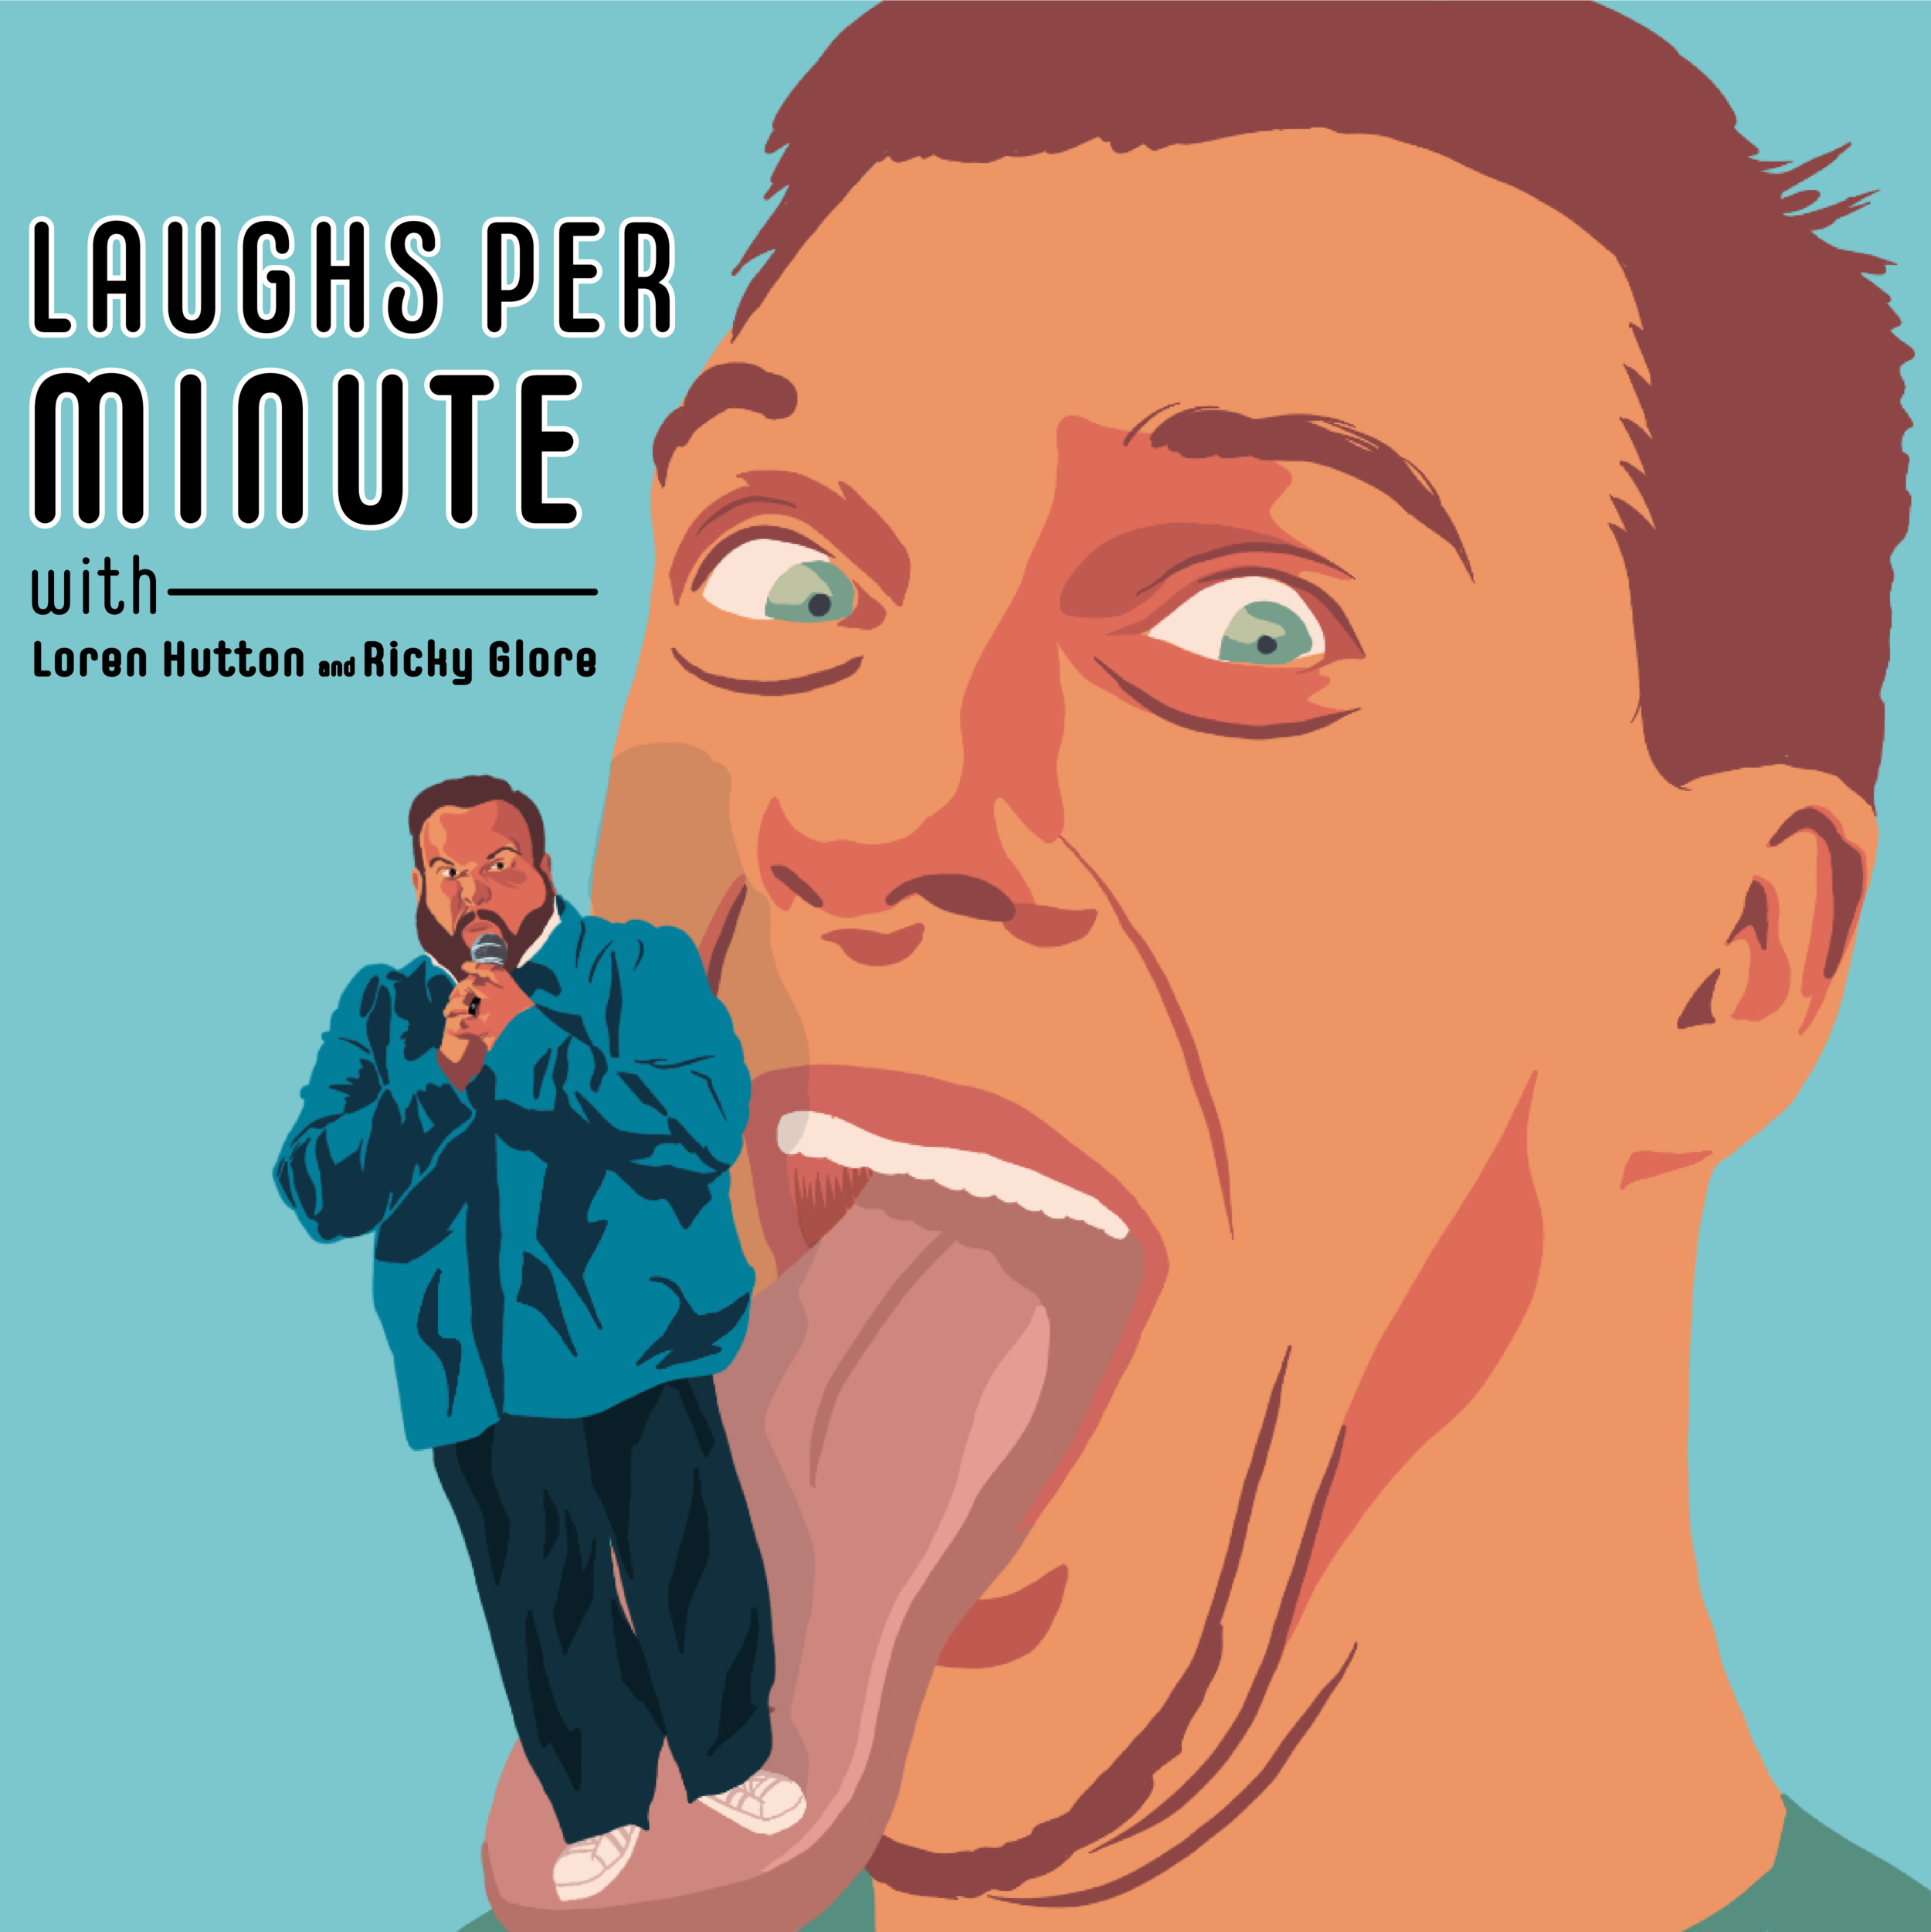 Laughs per minute - LAUGHS PER MINUTE is the podcast where notable guests talk about their journey into the world of comedy.On our main episodes, hosts Loren Hutton and Ricky Glore break down the interviews into three segments:EMCEE - In this segment, we chat about the origin story our guest have into the world of comedy and stand up. What/who were their influences and when/why/where did they first get into comedy?FEATURE - We examine the work they did to elevate their craft. Who did they start working for and how did they grow? When/how did things begin to